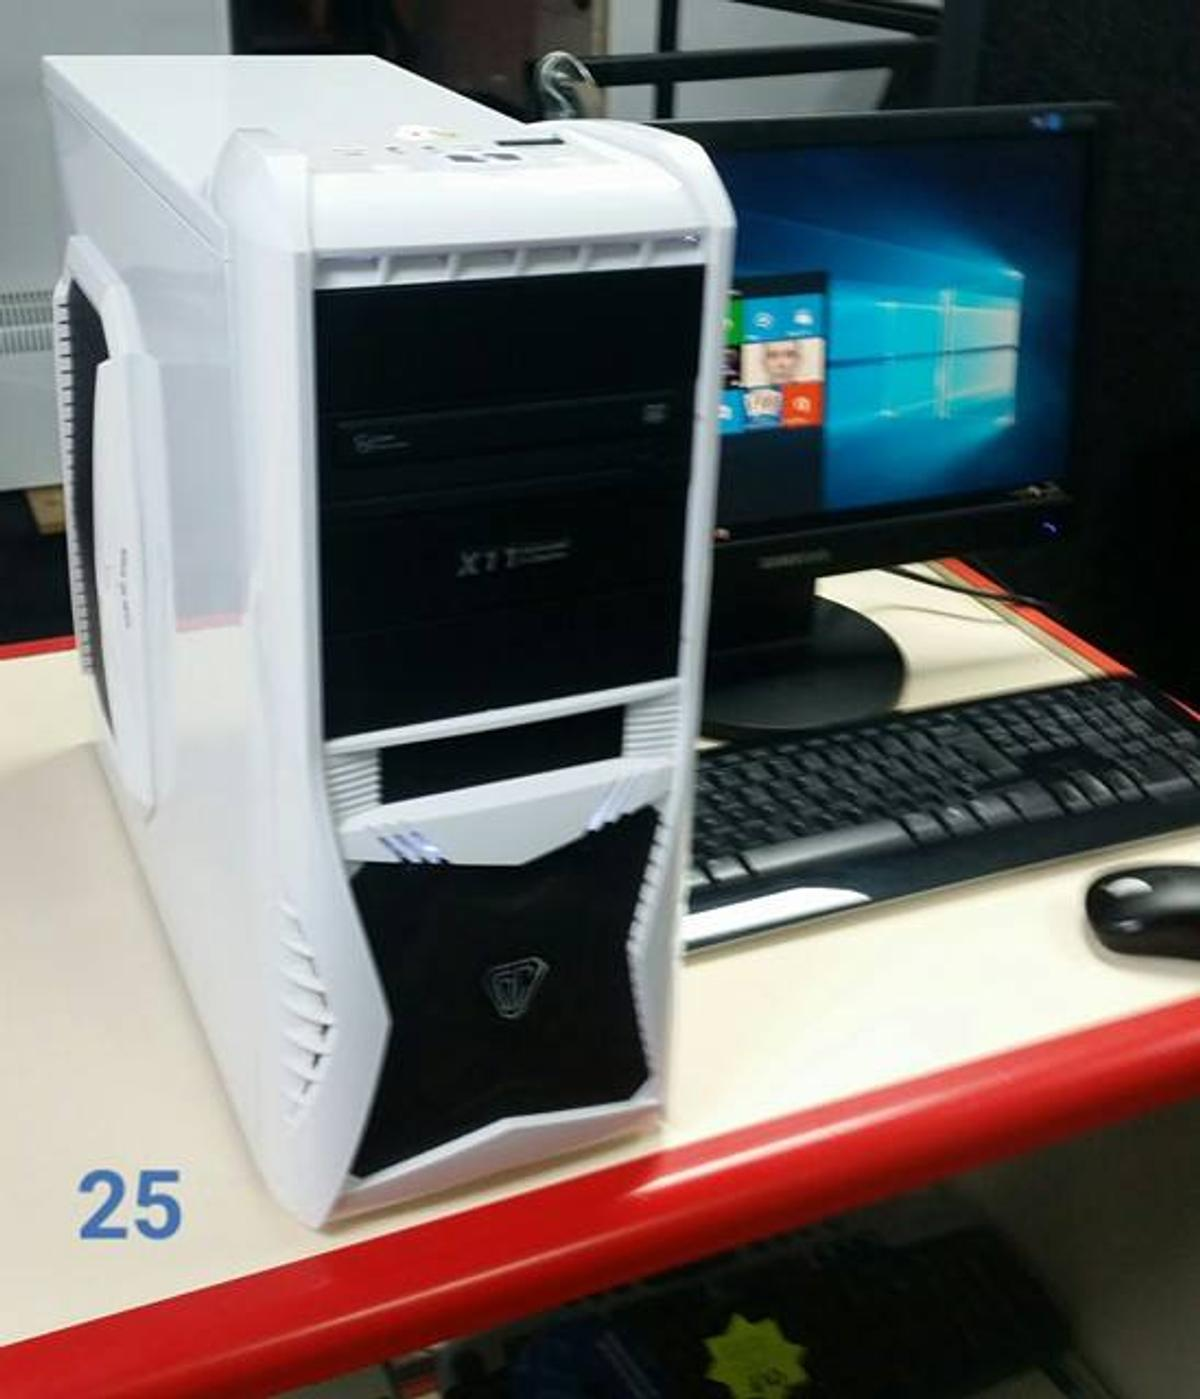 Amd A8 6600k Apu With Radeon Tm Hd Graphics In Ws10 Wednesbury For 200 00 For Sale Shpock